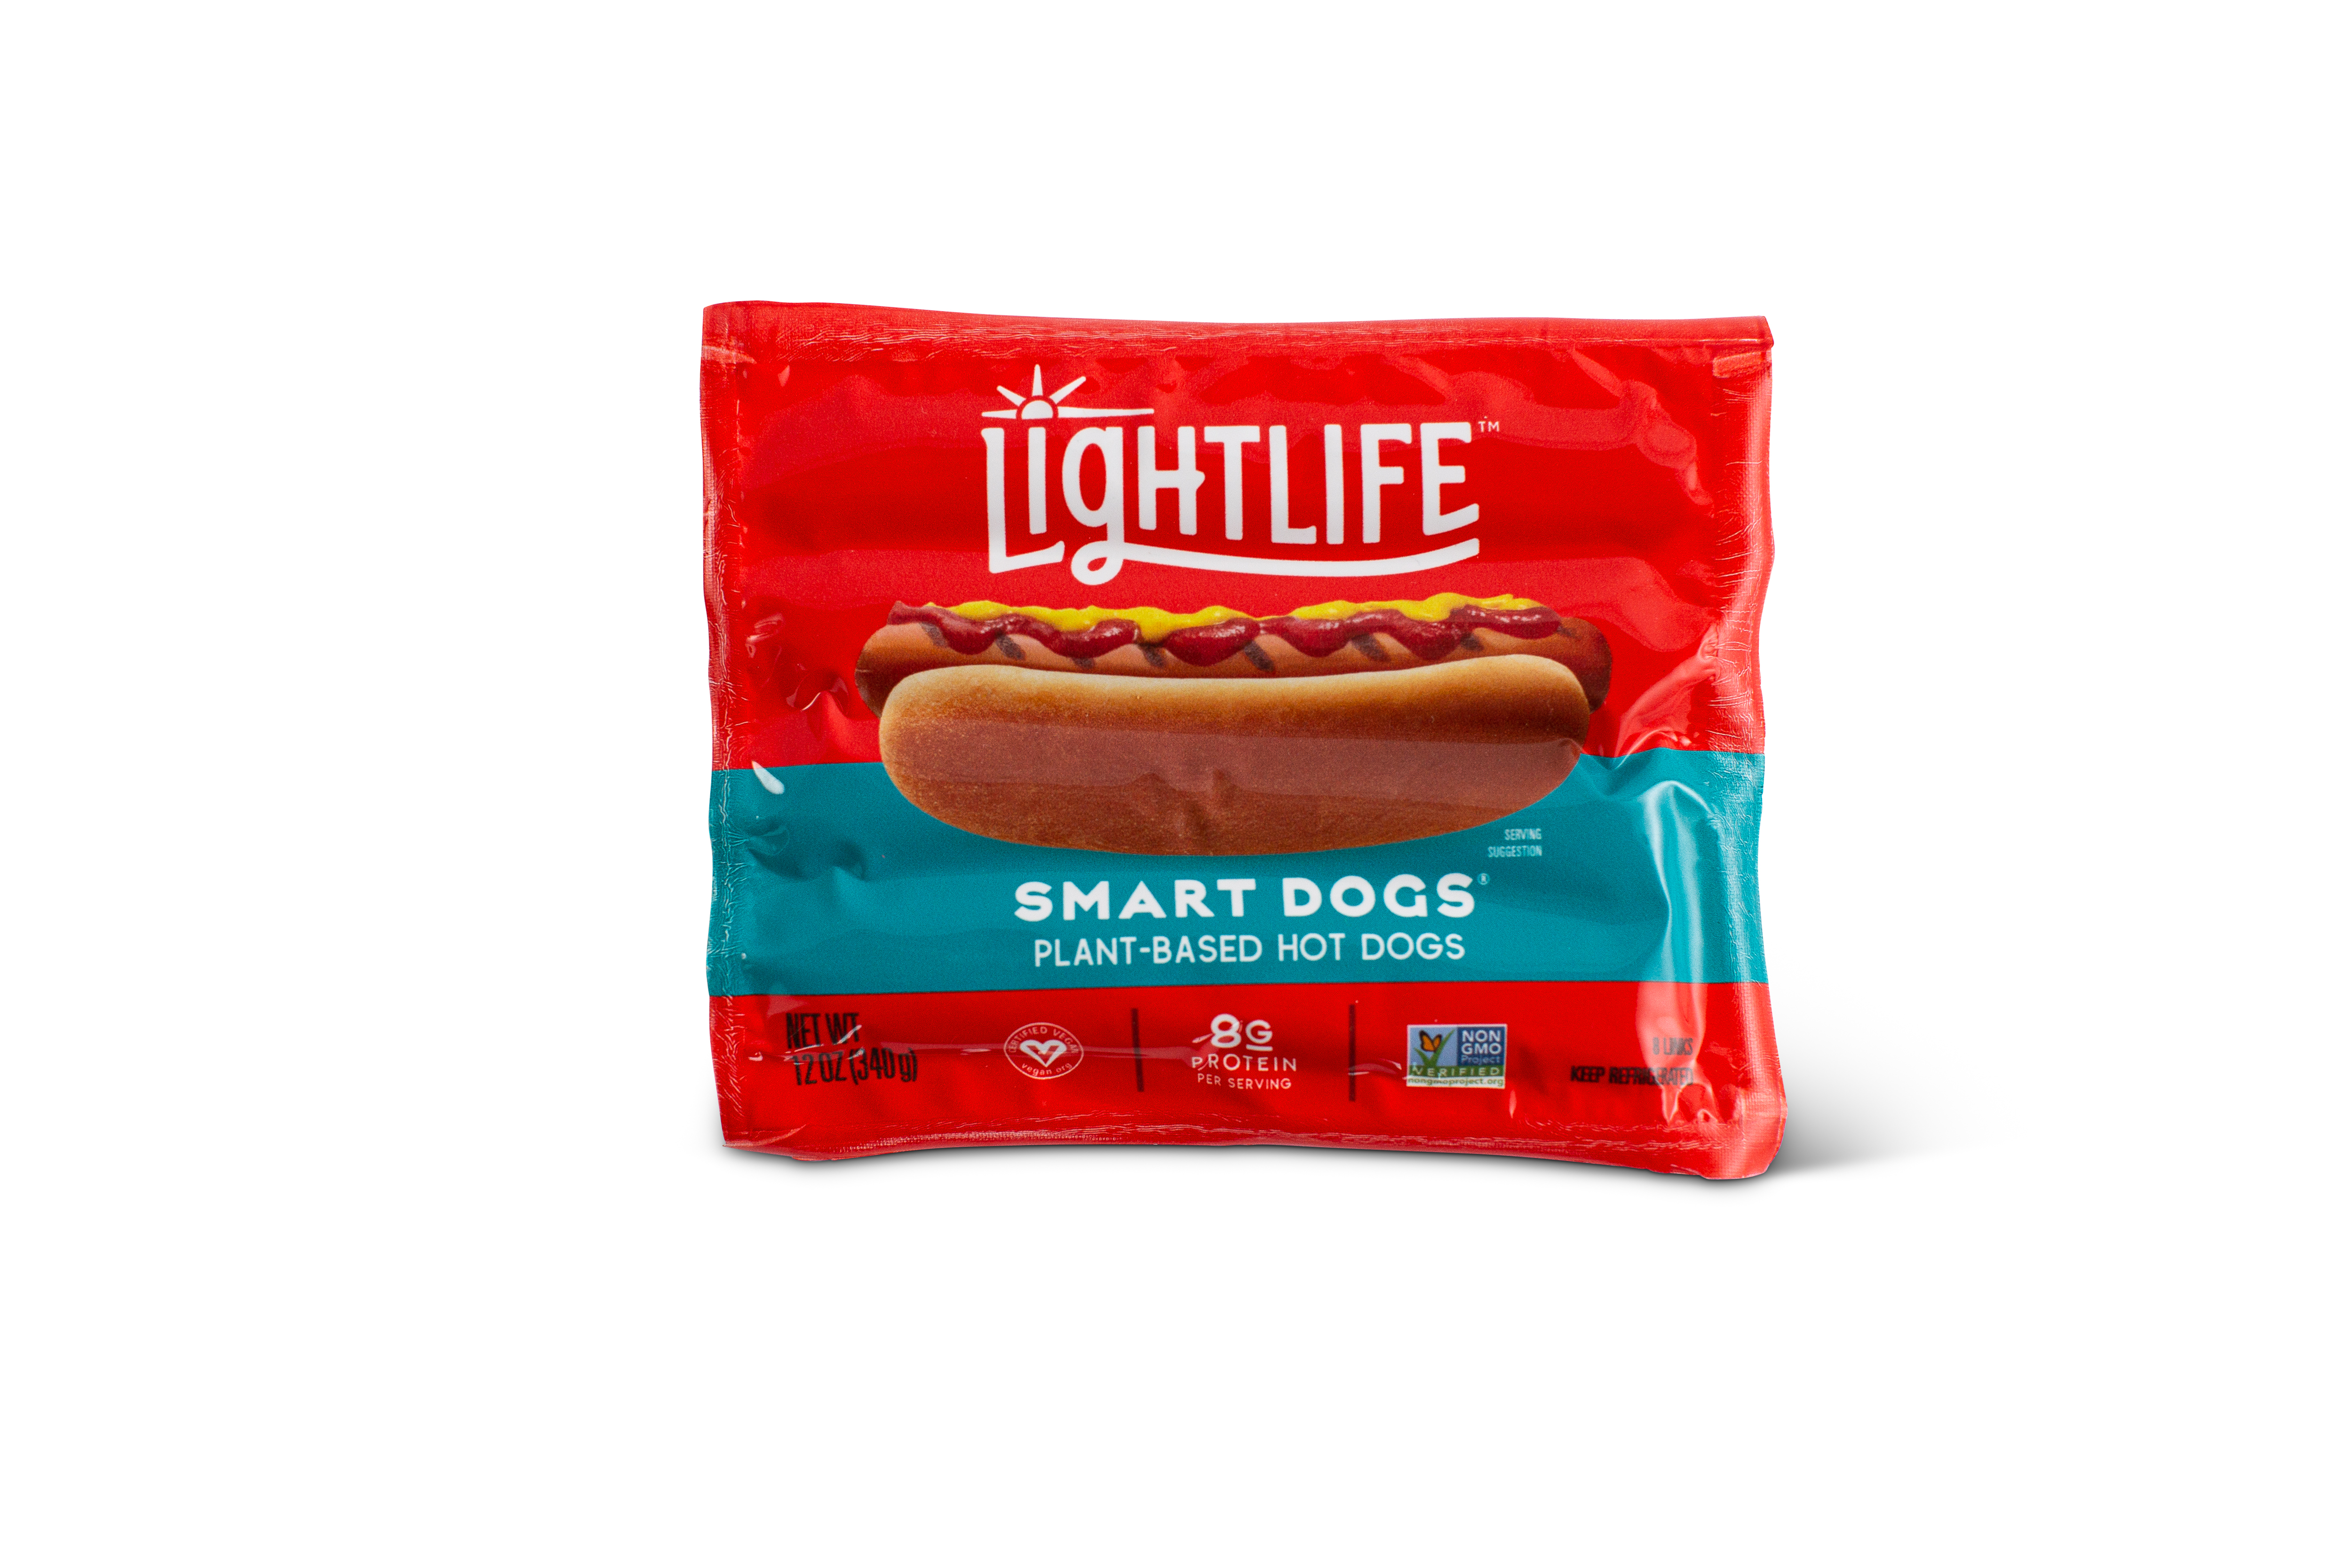 Lightlife Smart Dogs Meatless Veggie Hot Dogs, 8 count, 12 oz